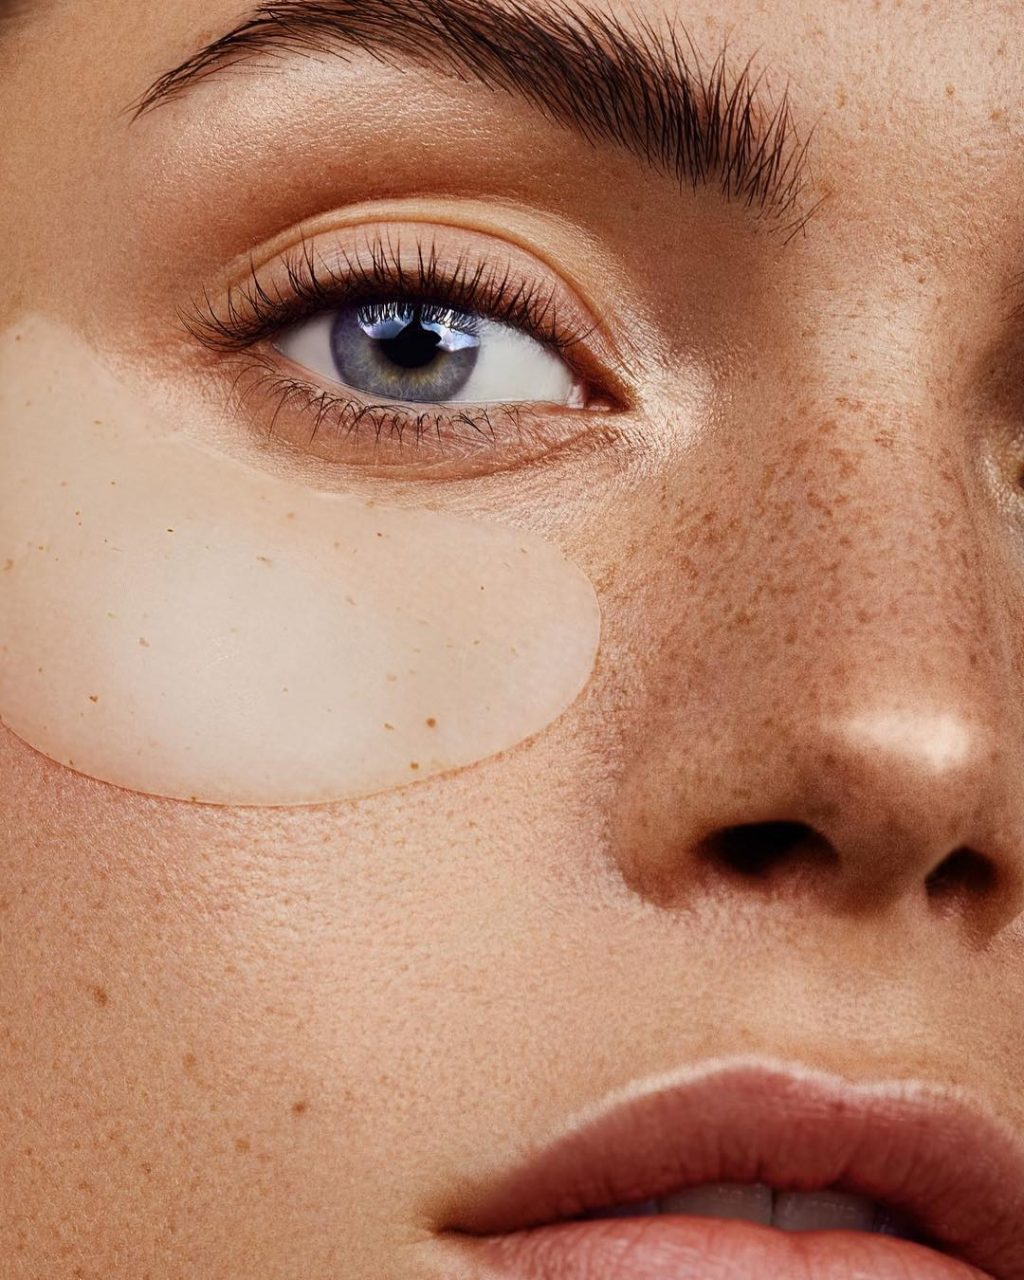 Micro-Needling Patches Are Apparently the Next Big Thing